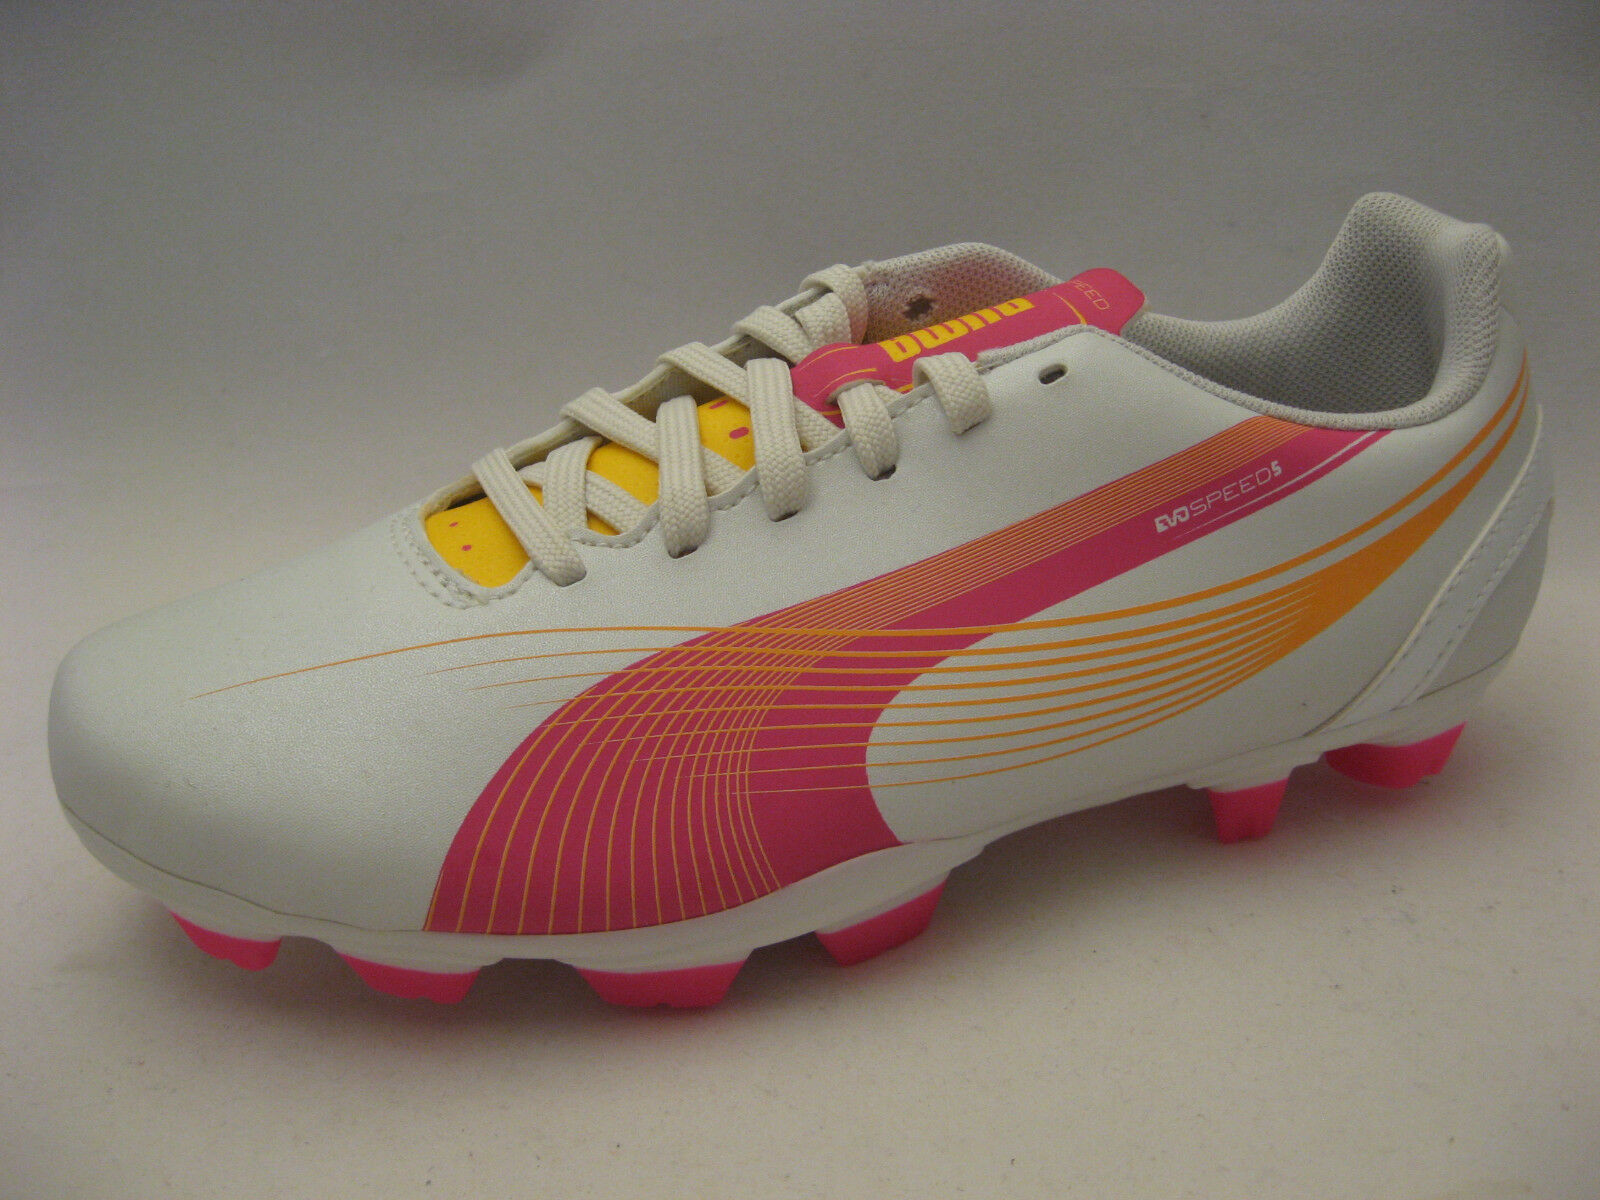 PUMA Women evoSPEED 5.2 FG Soccer Cleats 6.5 Medium Pearlized White Pink orange